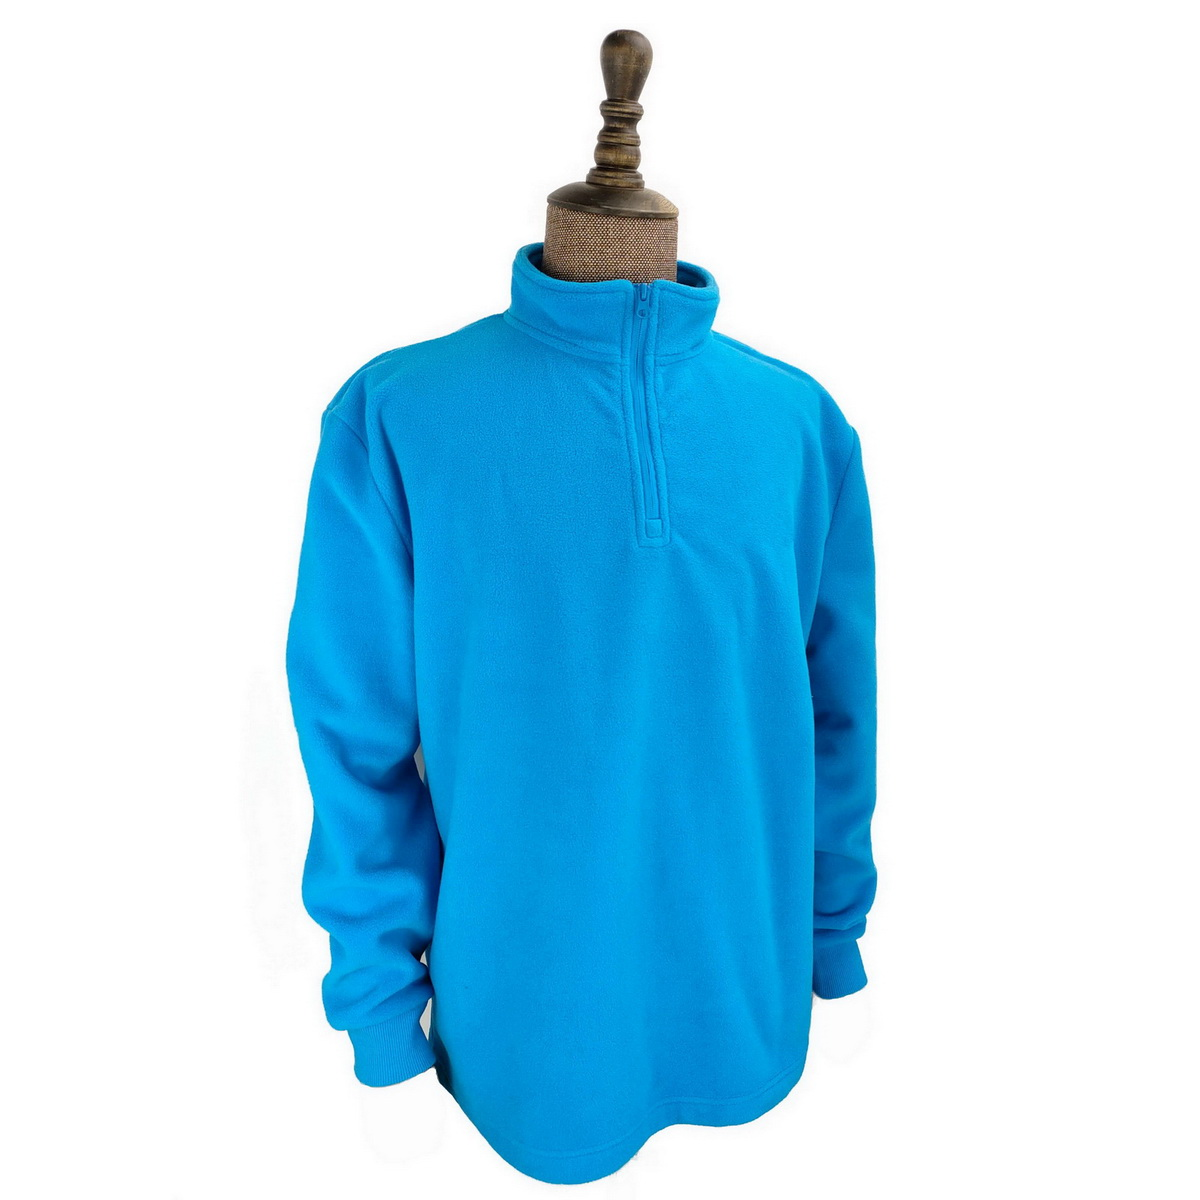 Men's Fleece Shirt